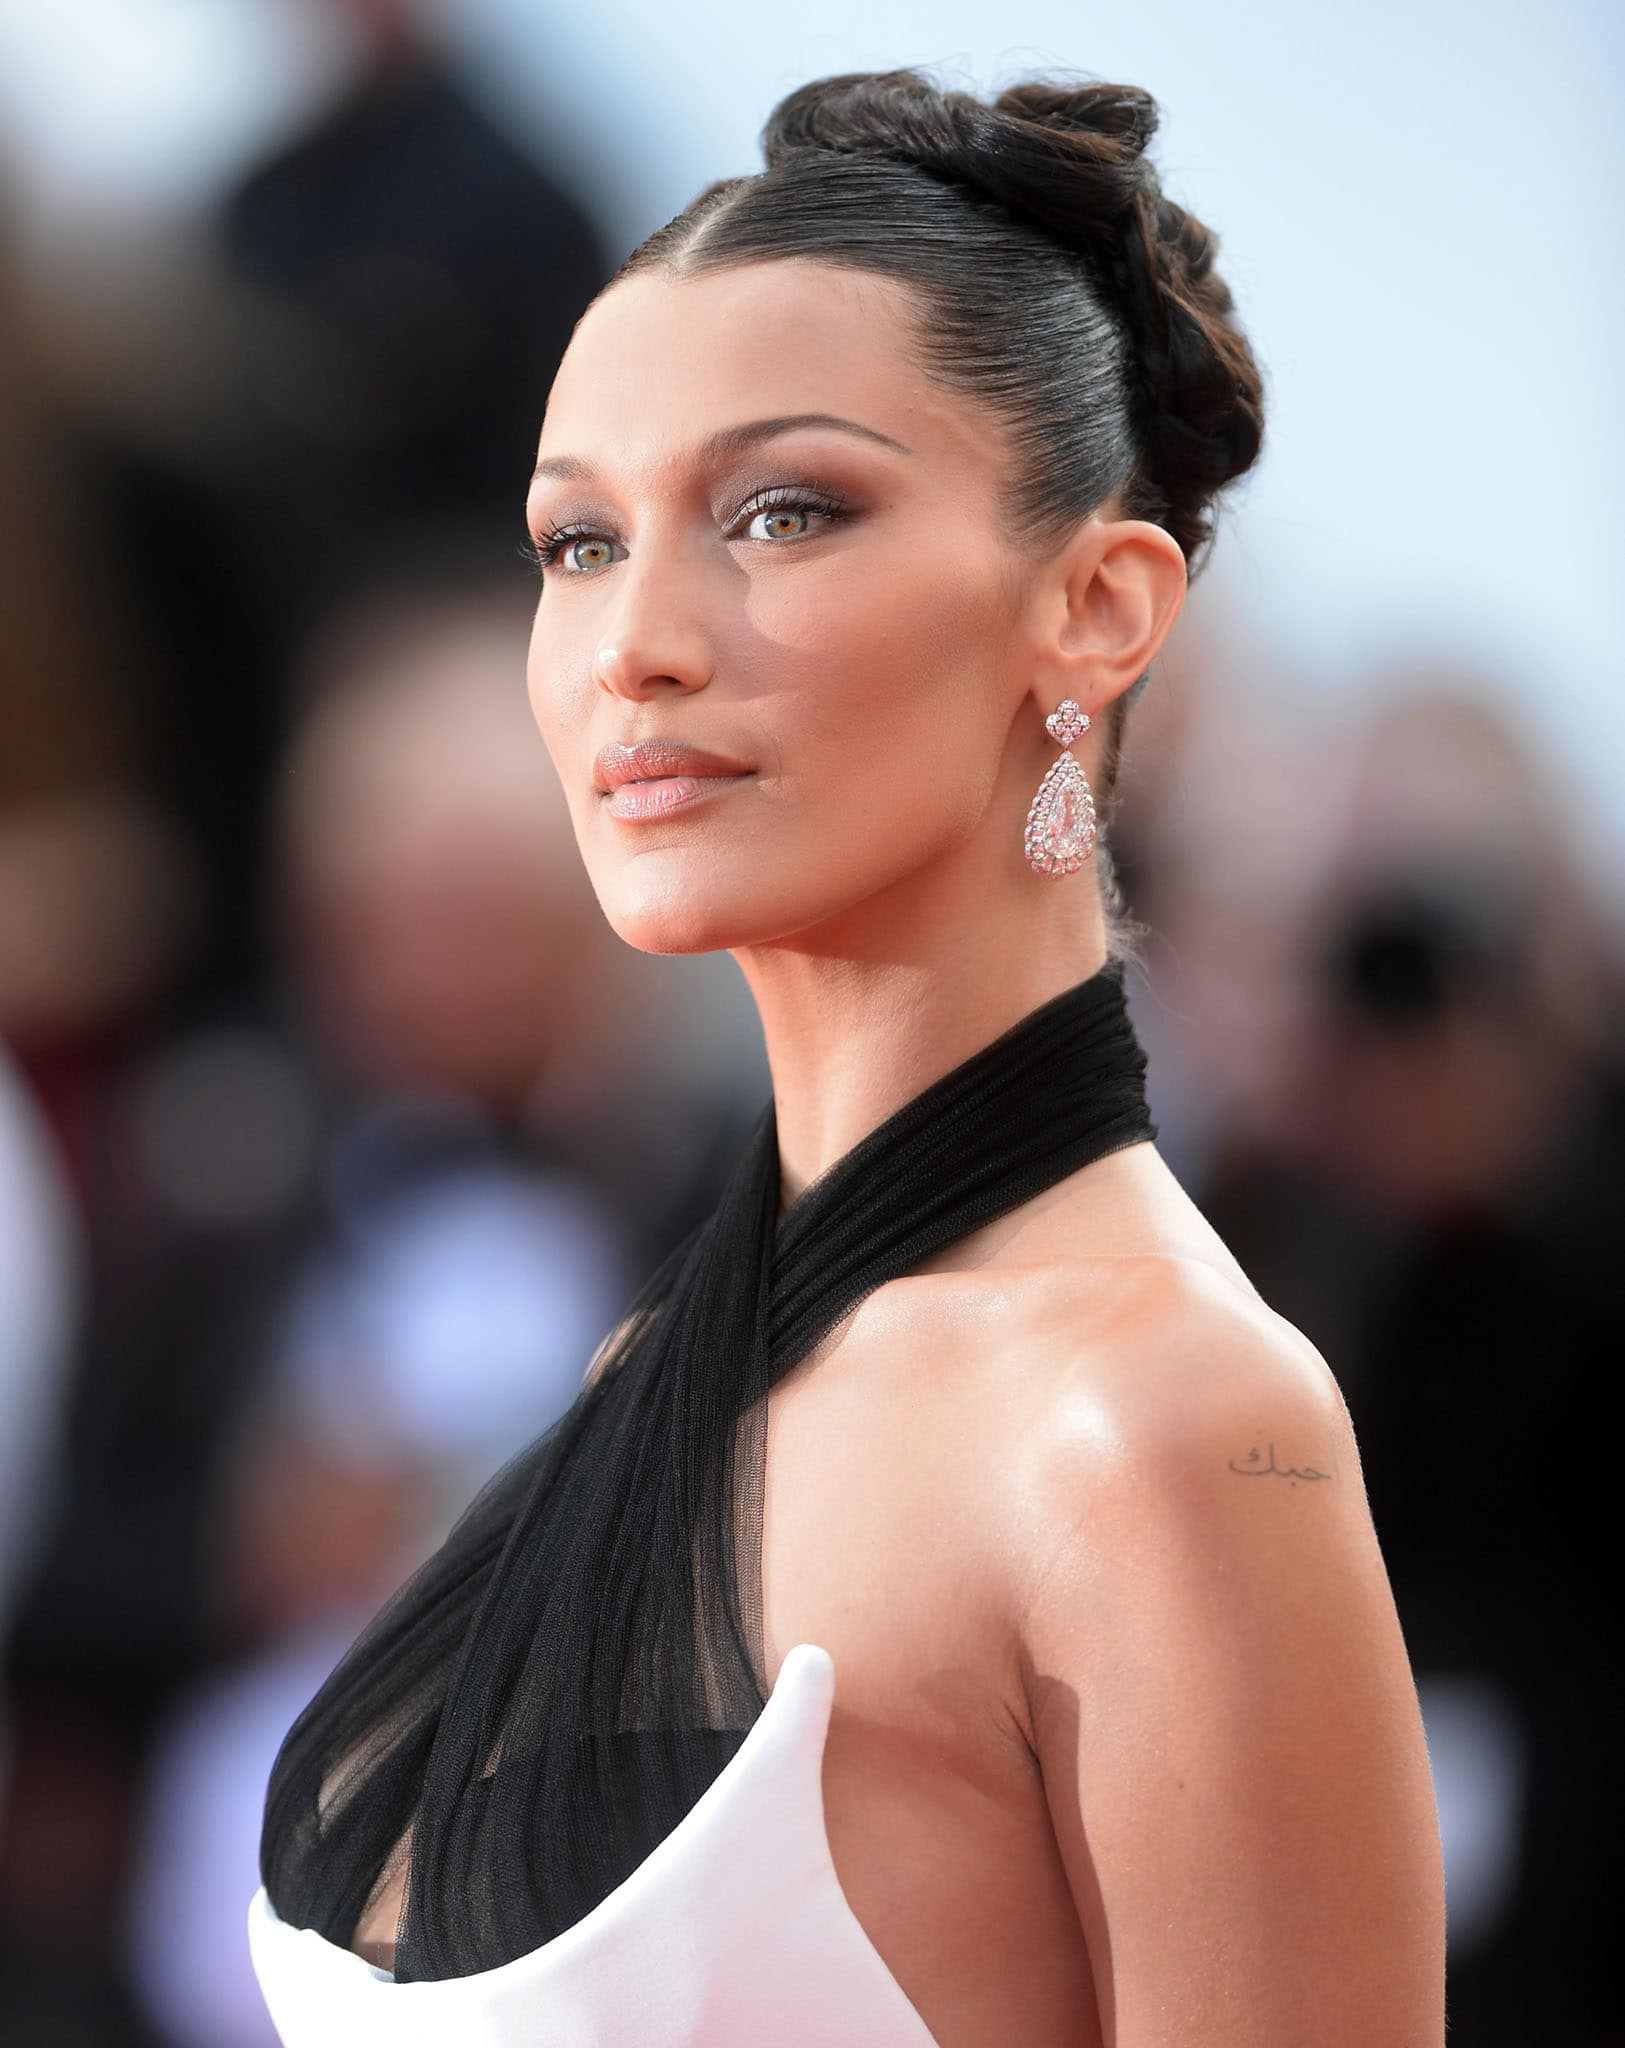 Bella Hadid showcases her Chopard pear-shaped diamond earrings as she wears her tresses in a chic and sleek updo